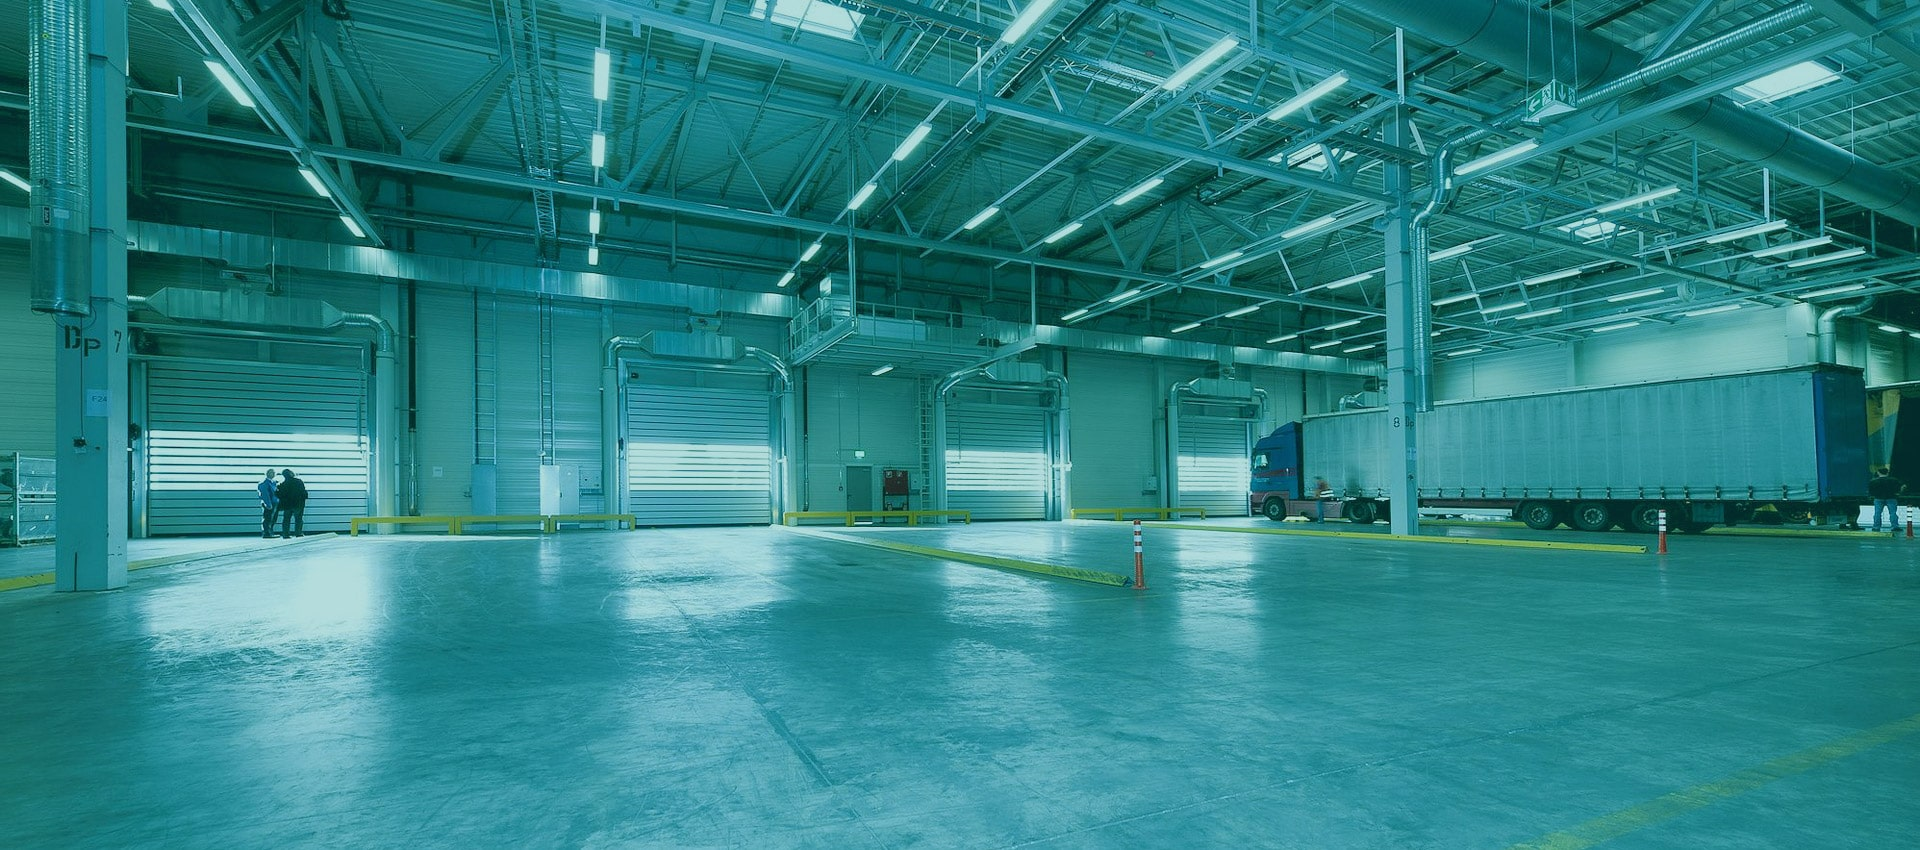 Monitoring warehousing, logistics spaces